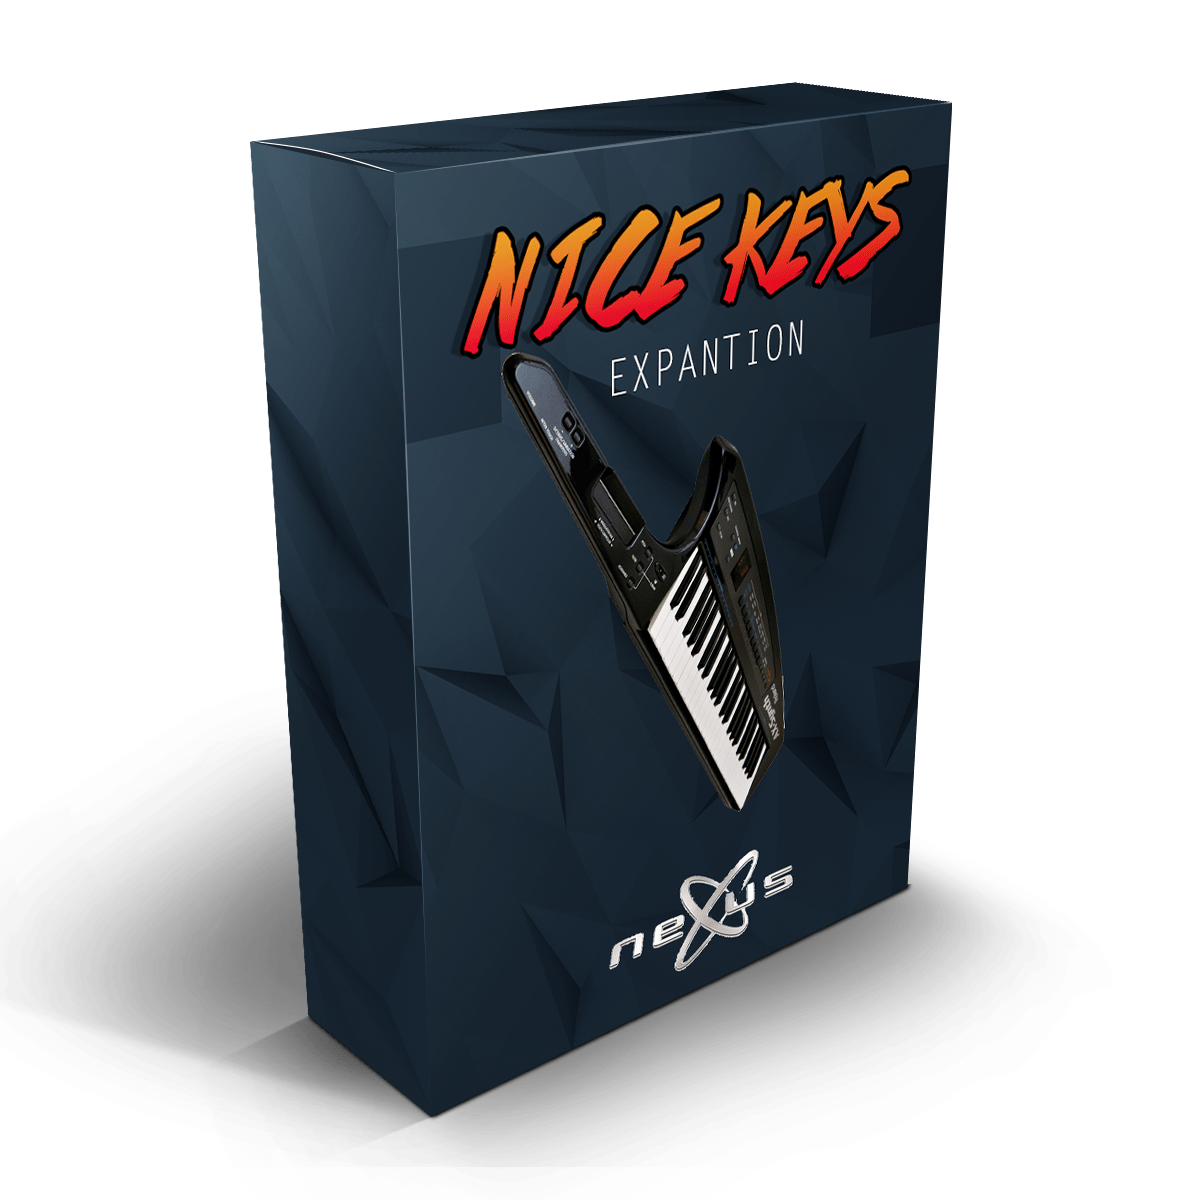 Nice Keys - Nexus Expansion - Producer Sources